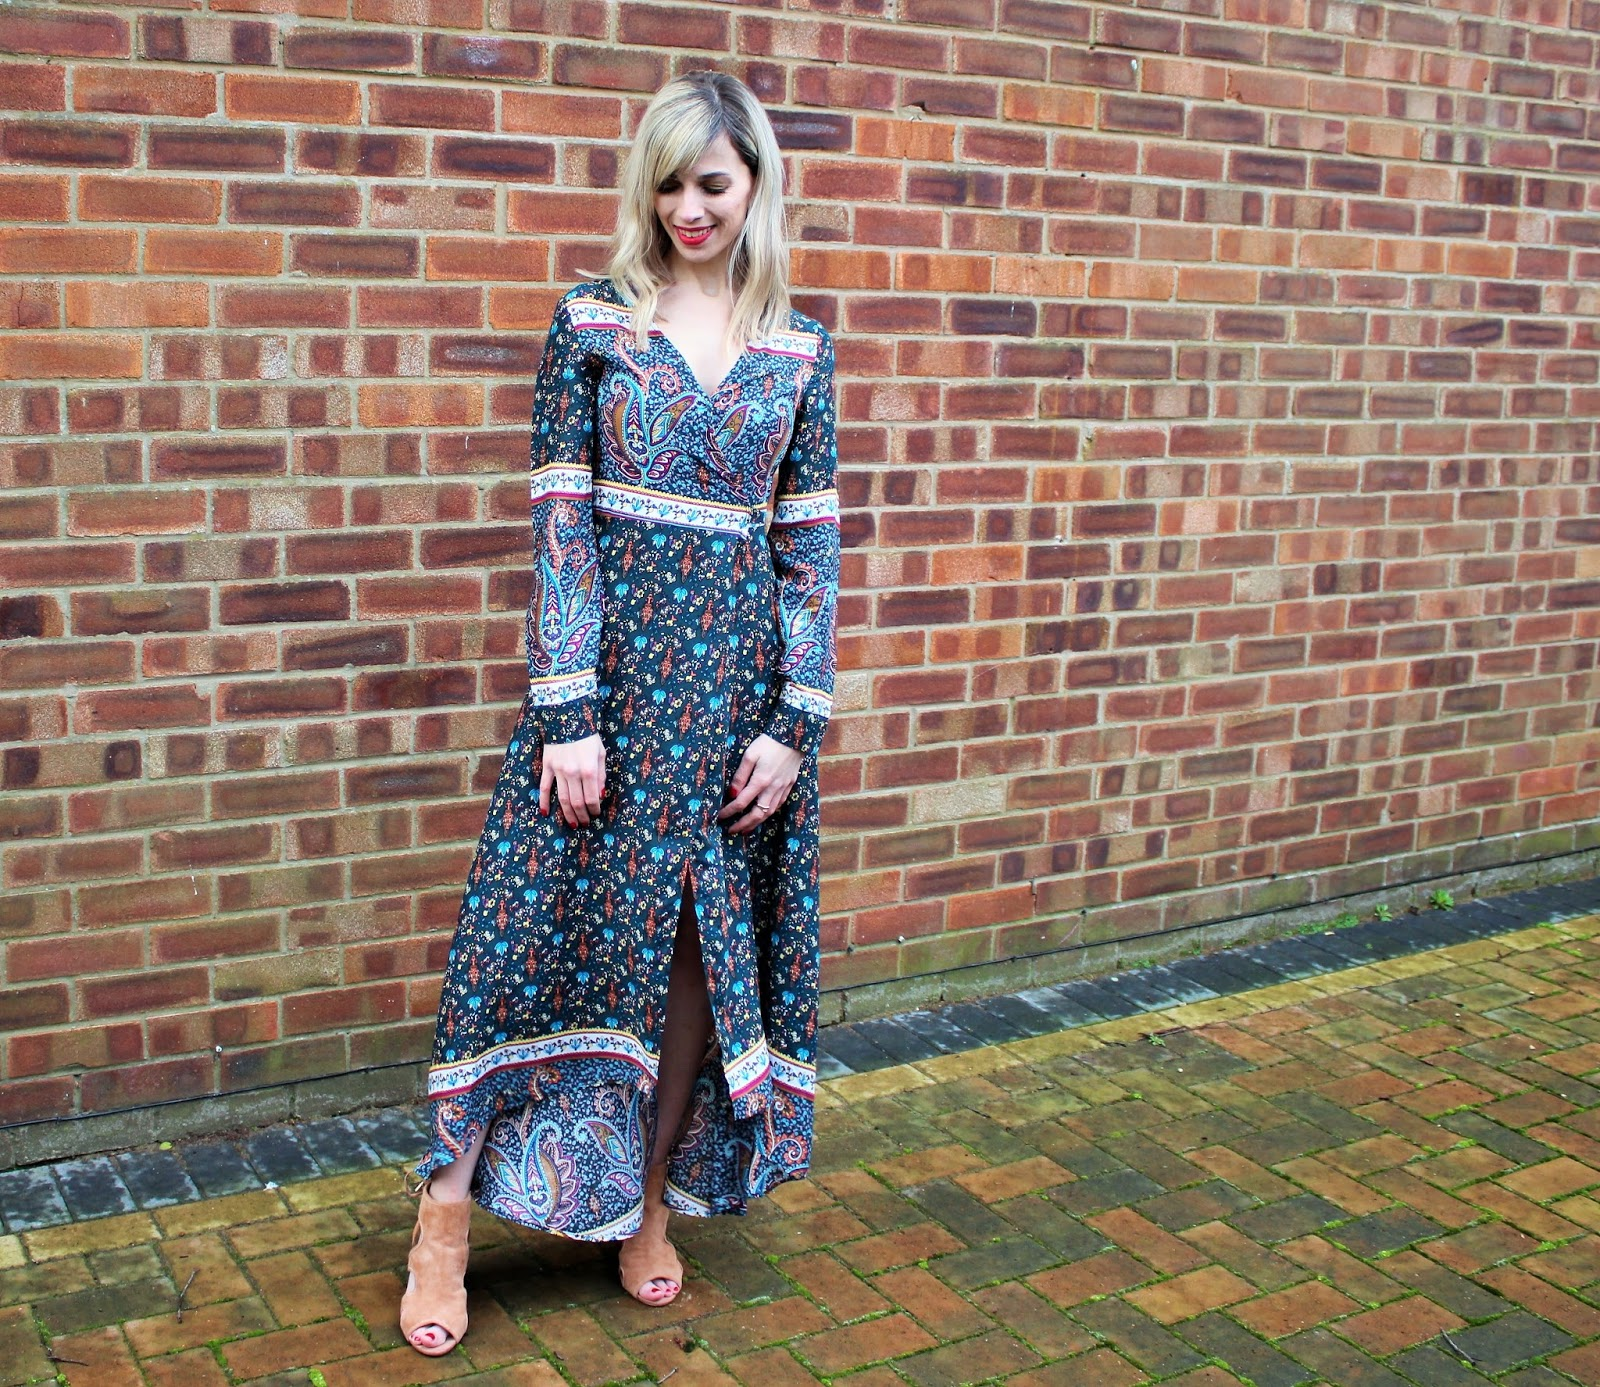 OOTD featuring a Shein wraparound maxi dress - 2